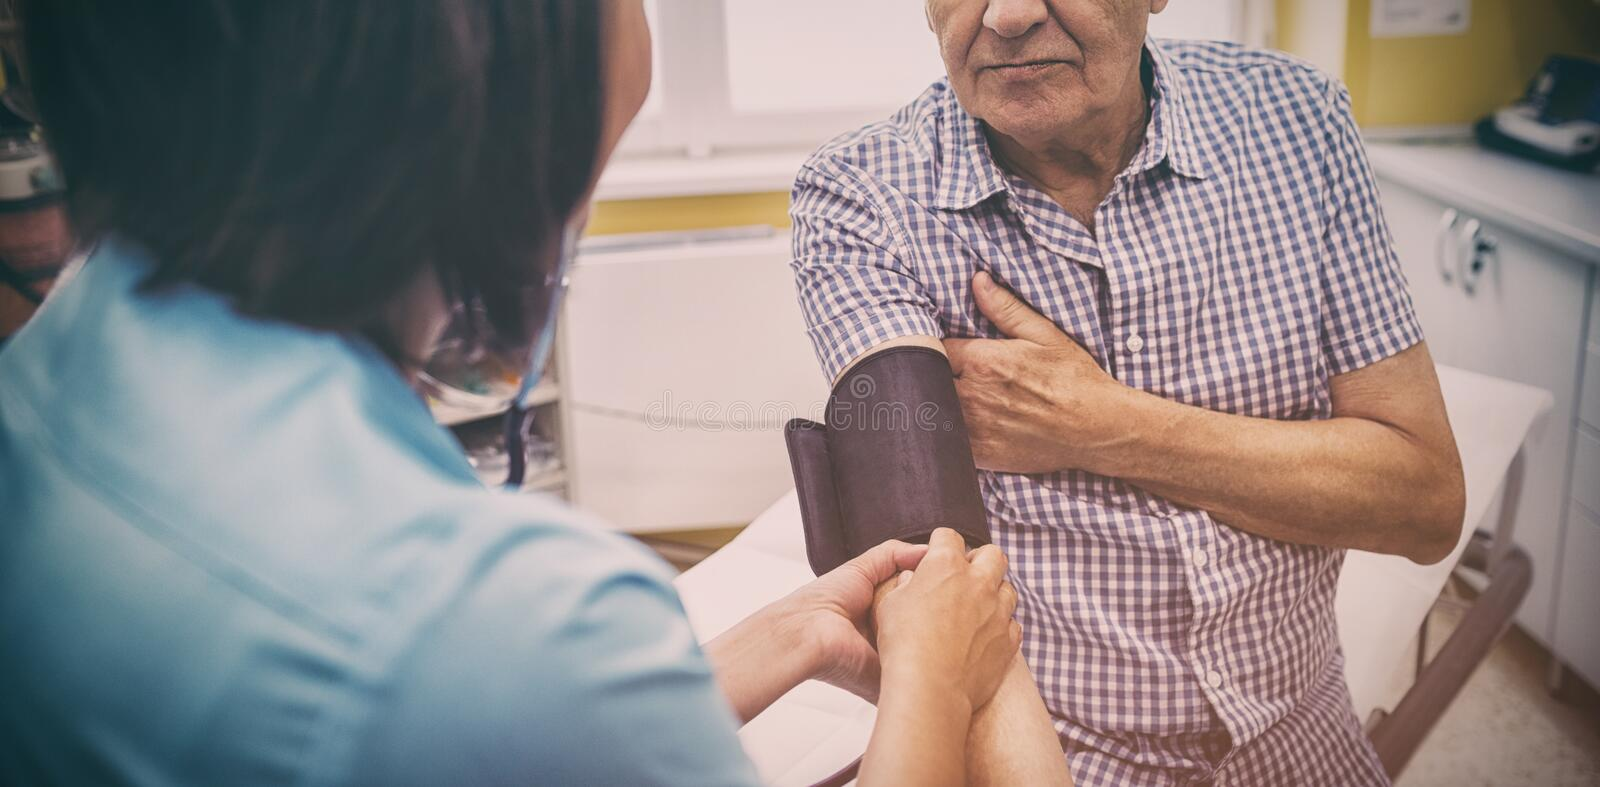 Female doctor checking blood pressure of patient stock photo